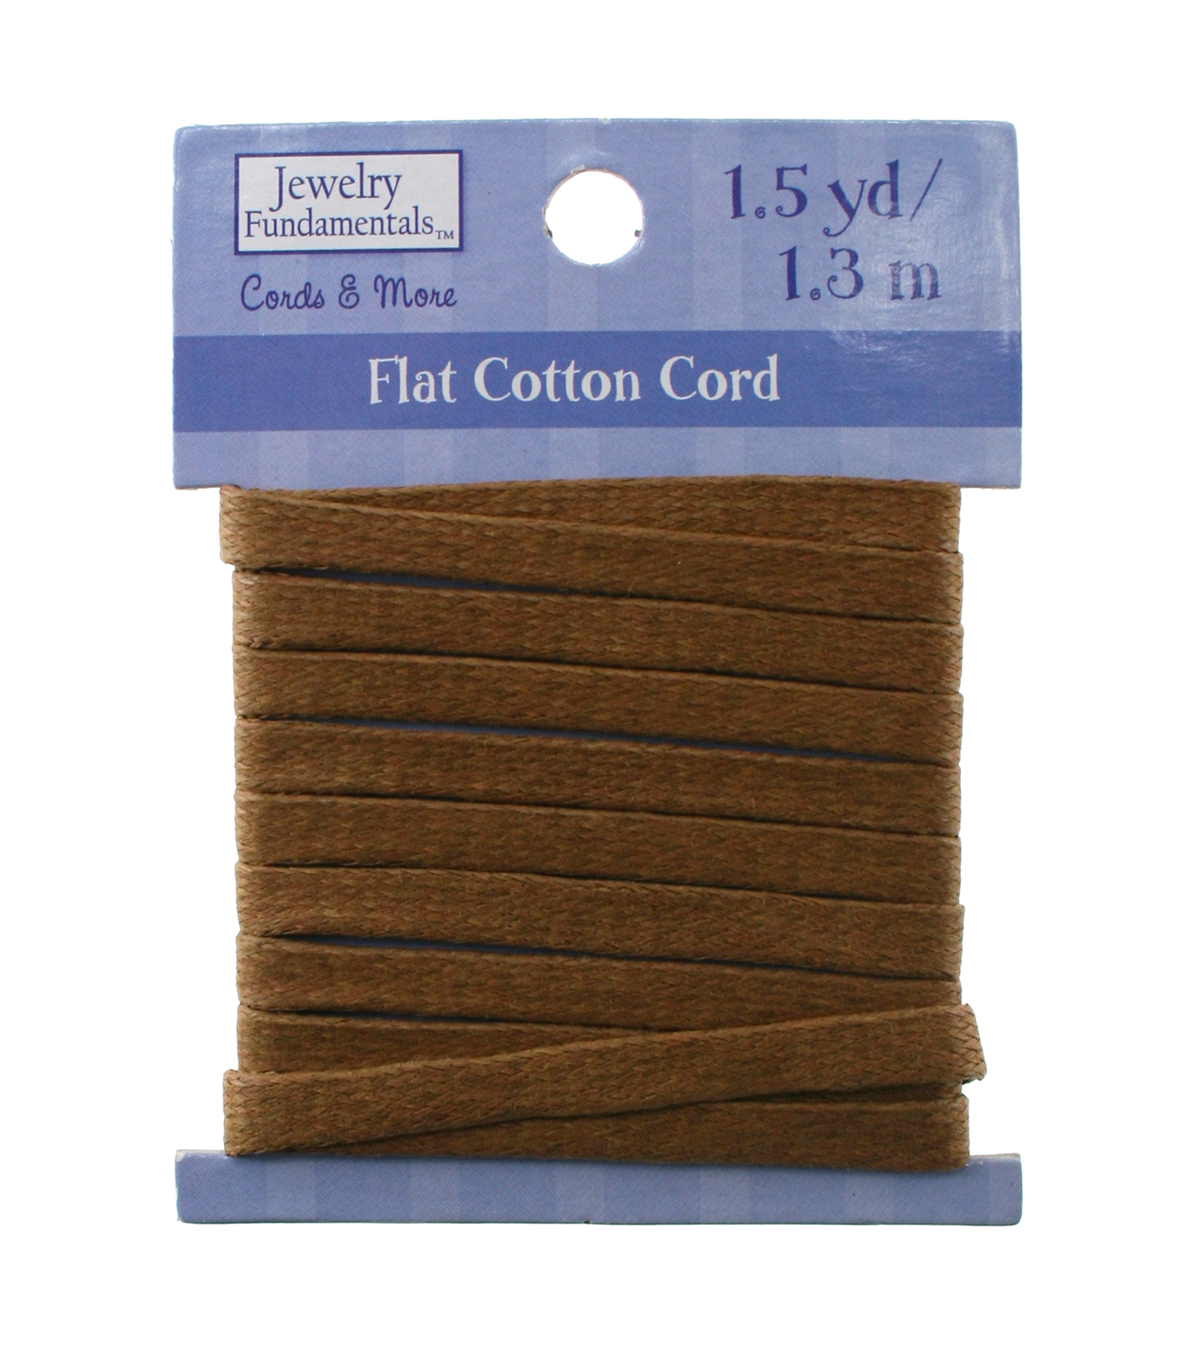 Jewelry Fundamentals Cords & More Flat Cotton Cord - Lt. Brown